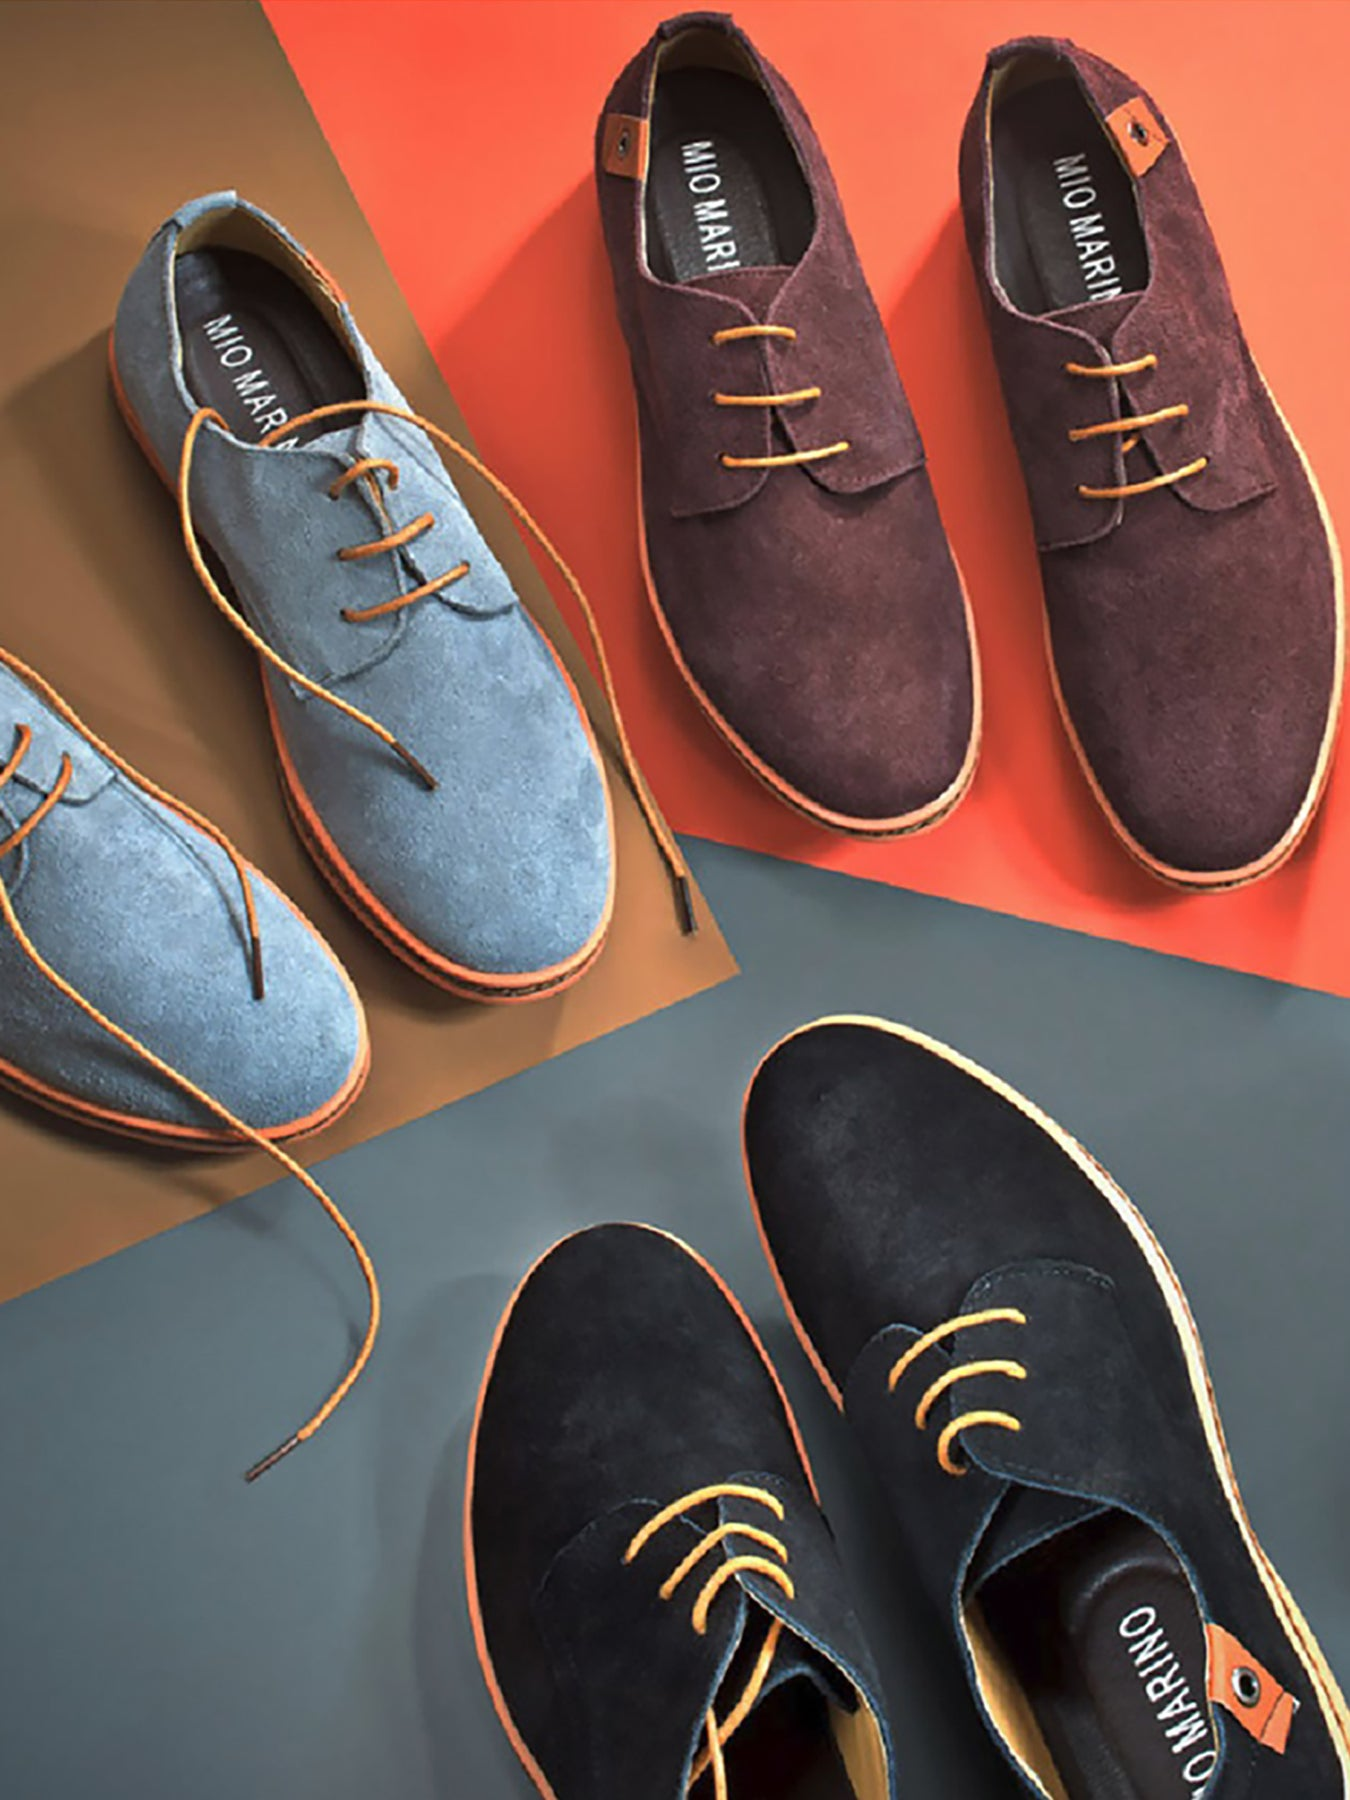 Classic Suede Oxford Shoes– Mio Marino